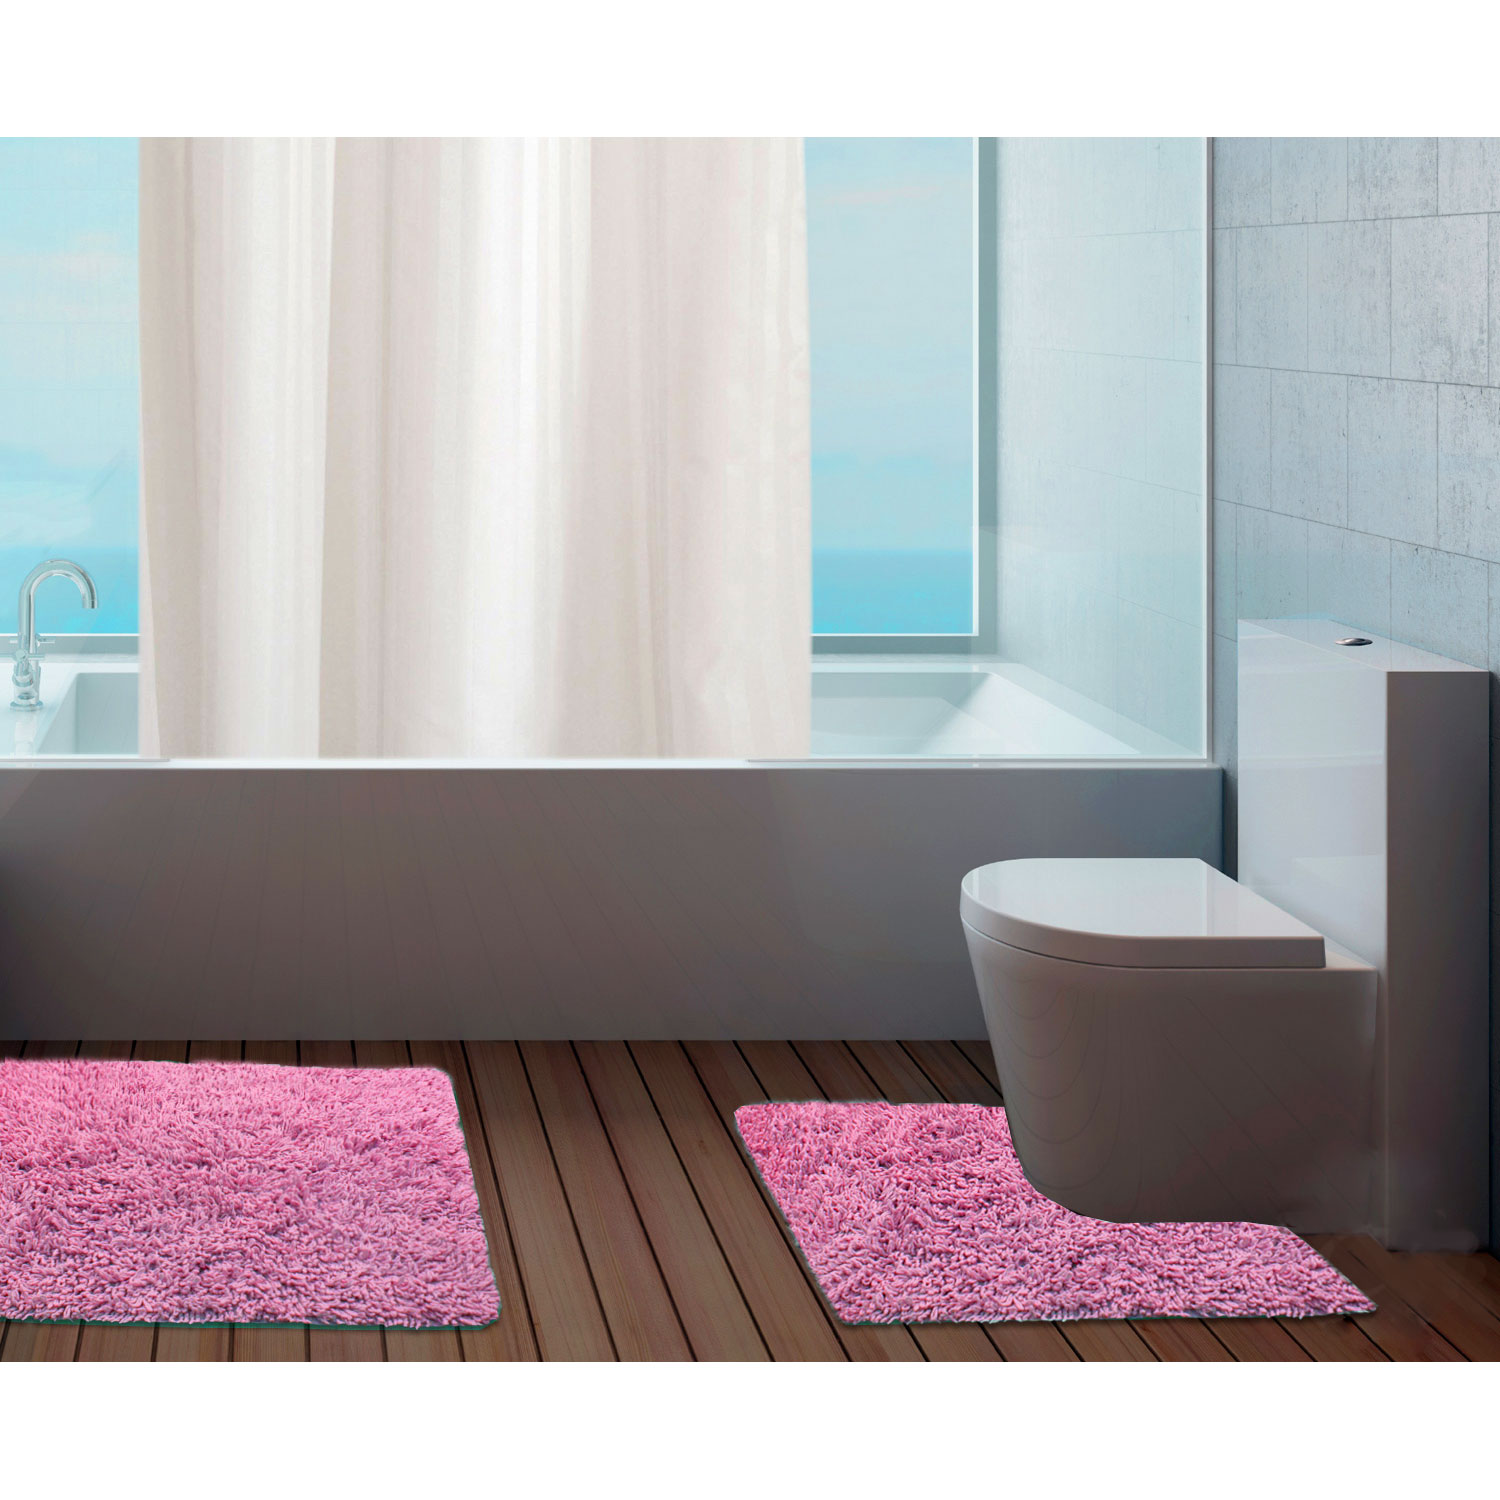 100% cotton bathroom mats set - washable bath & pedestal mat